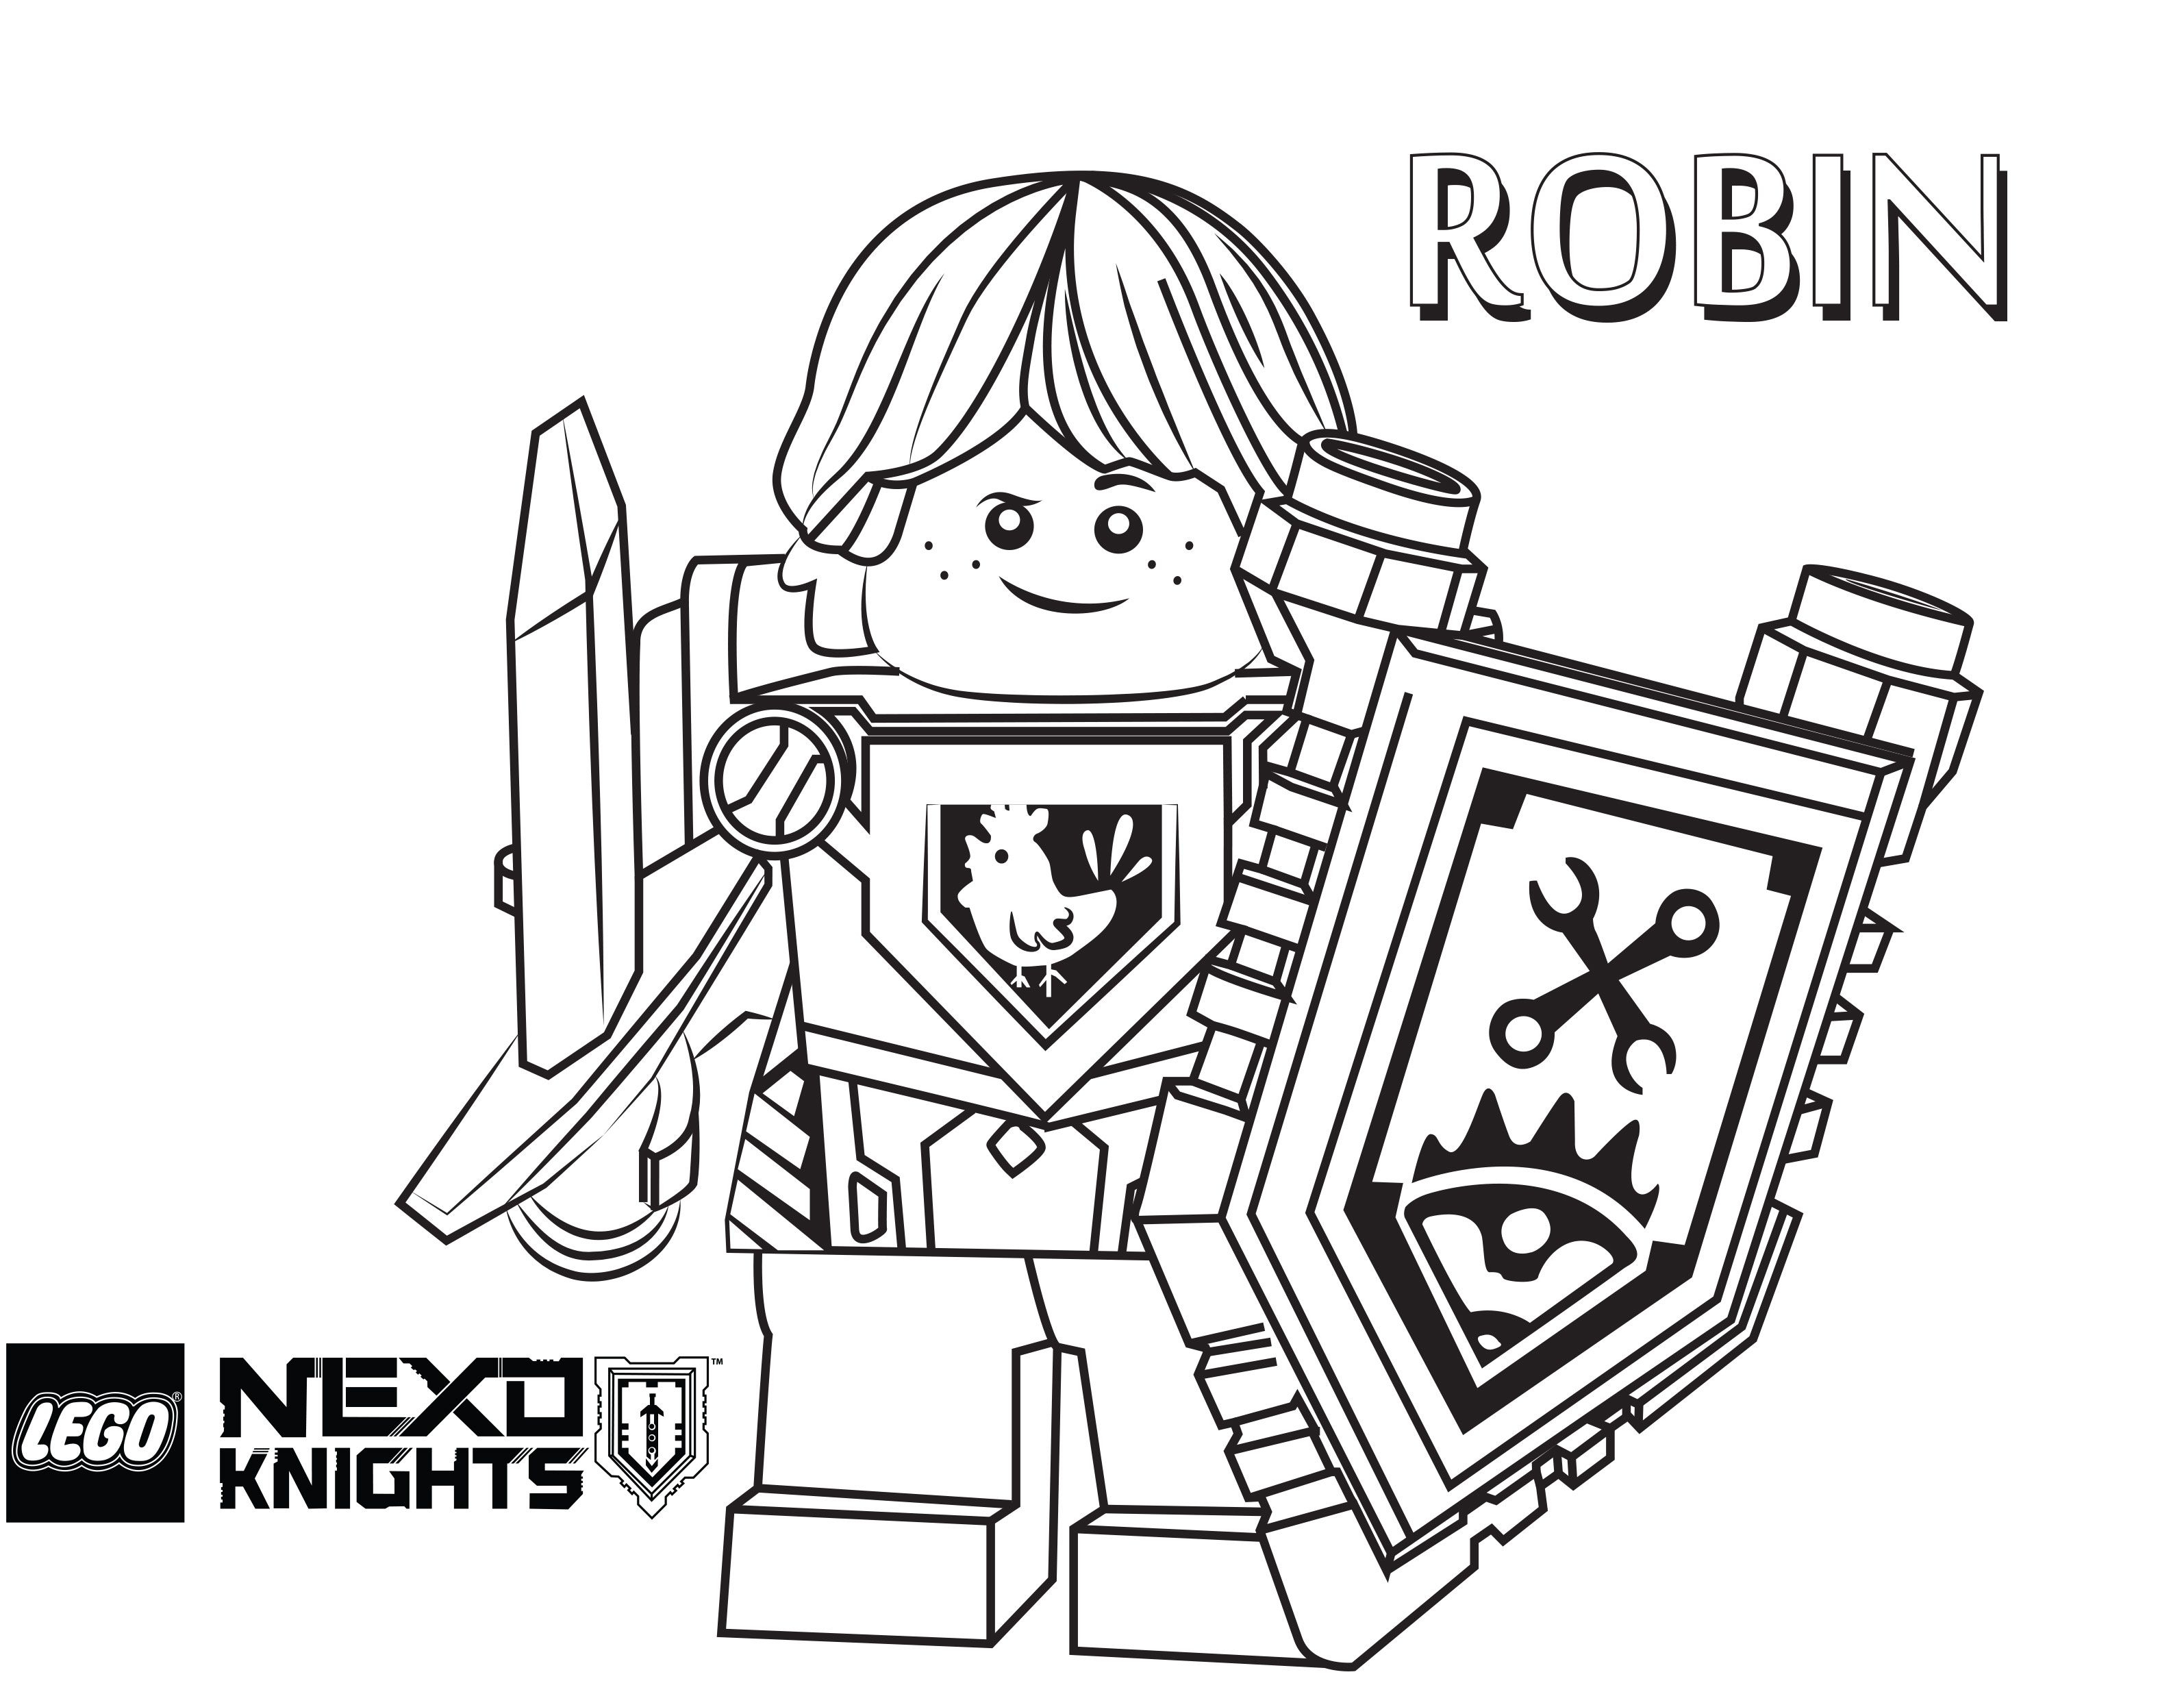 Coloring Pages : Coloring Pageso Nexo Knights Free Printable For - Free Printable Pictures Of Knights